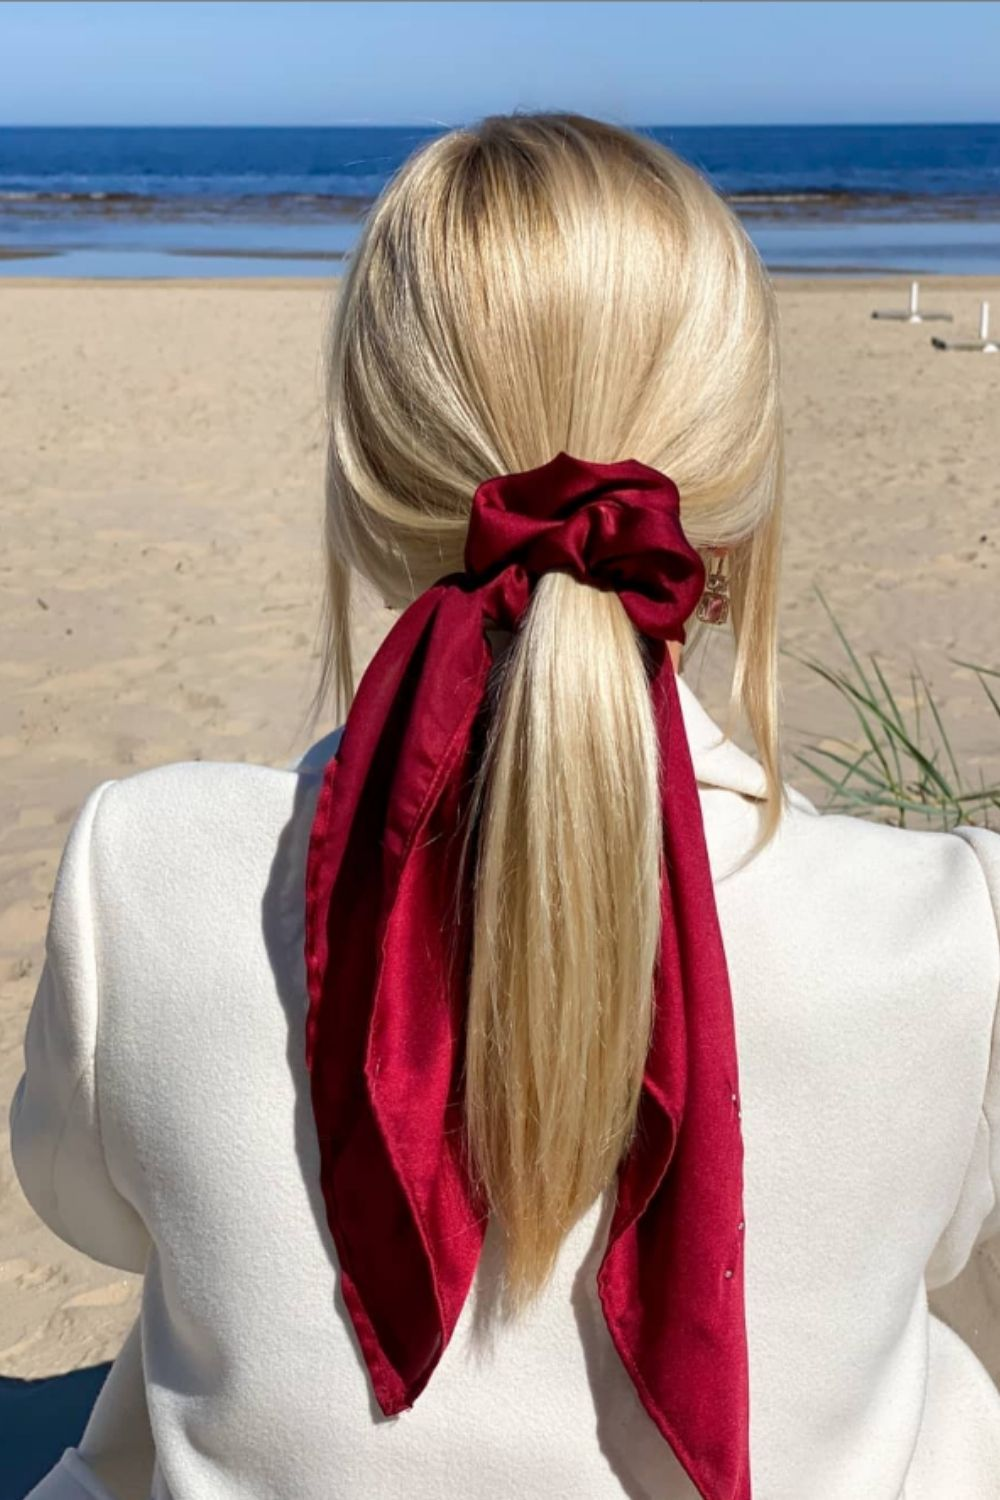 How To Style Cute Summer Hairstyle For Women?